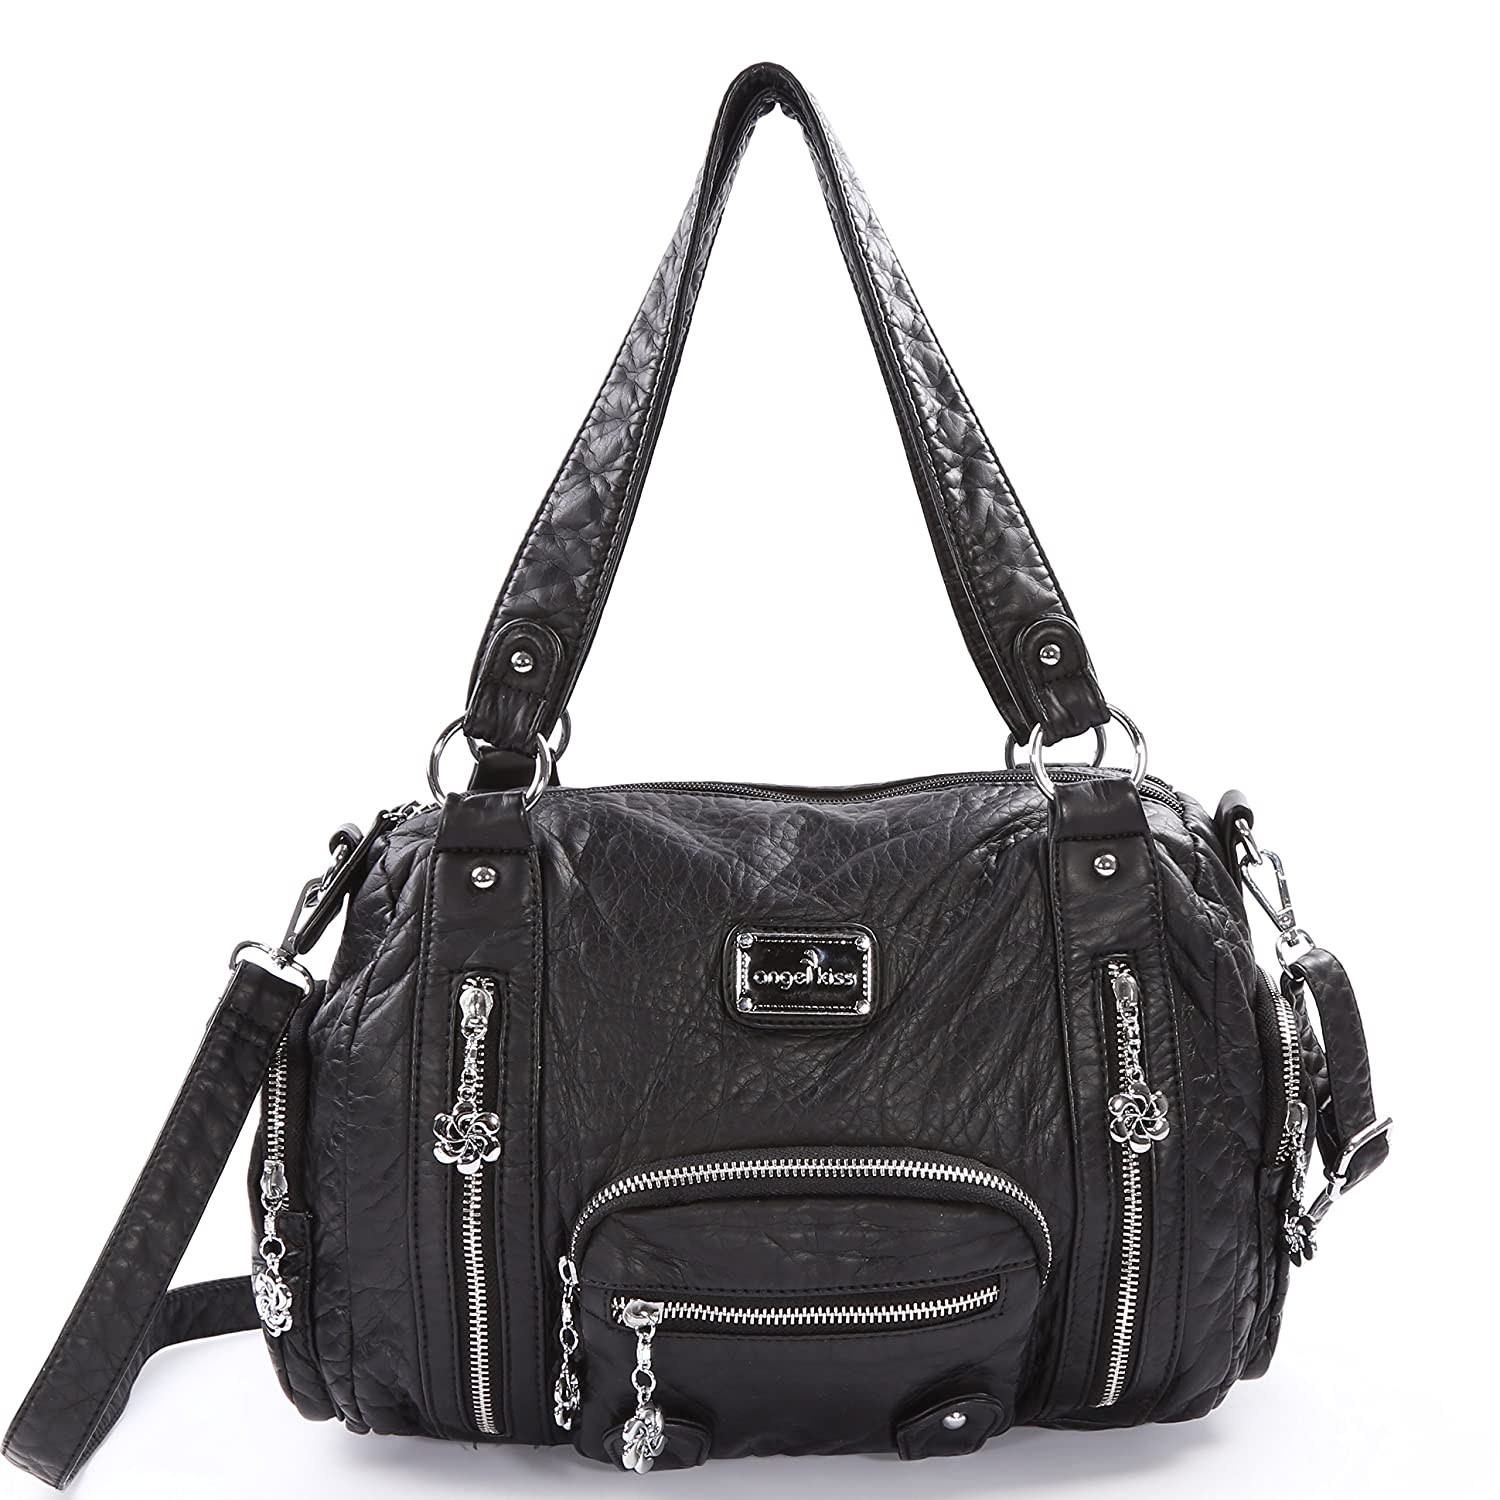 a0e3ce7beee Purses and Handbags - Angel kiss Women s Tote Handbag Water Resistant  Washed PU Leather Shoulder Messenger Bag With 2 Separated Compartments  (black-2)  ...